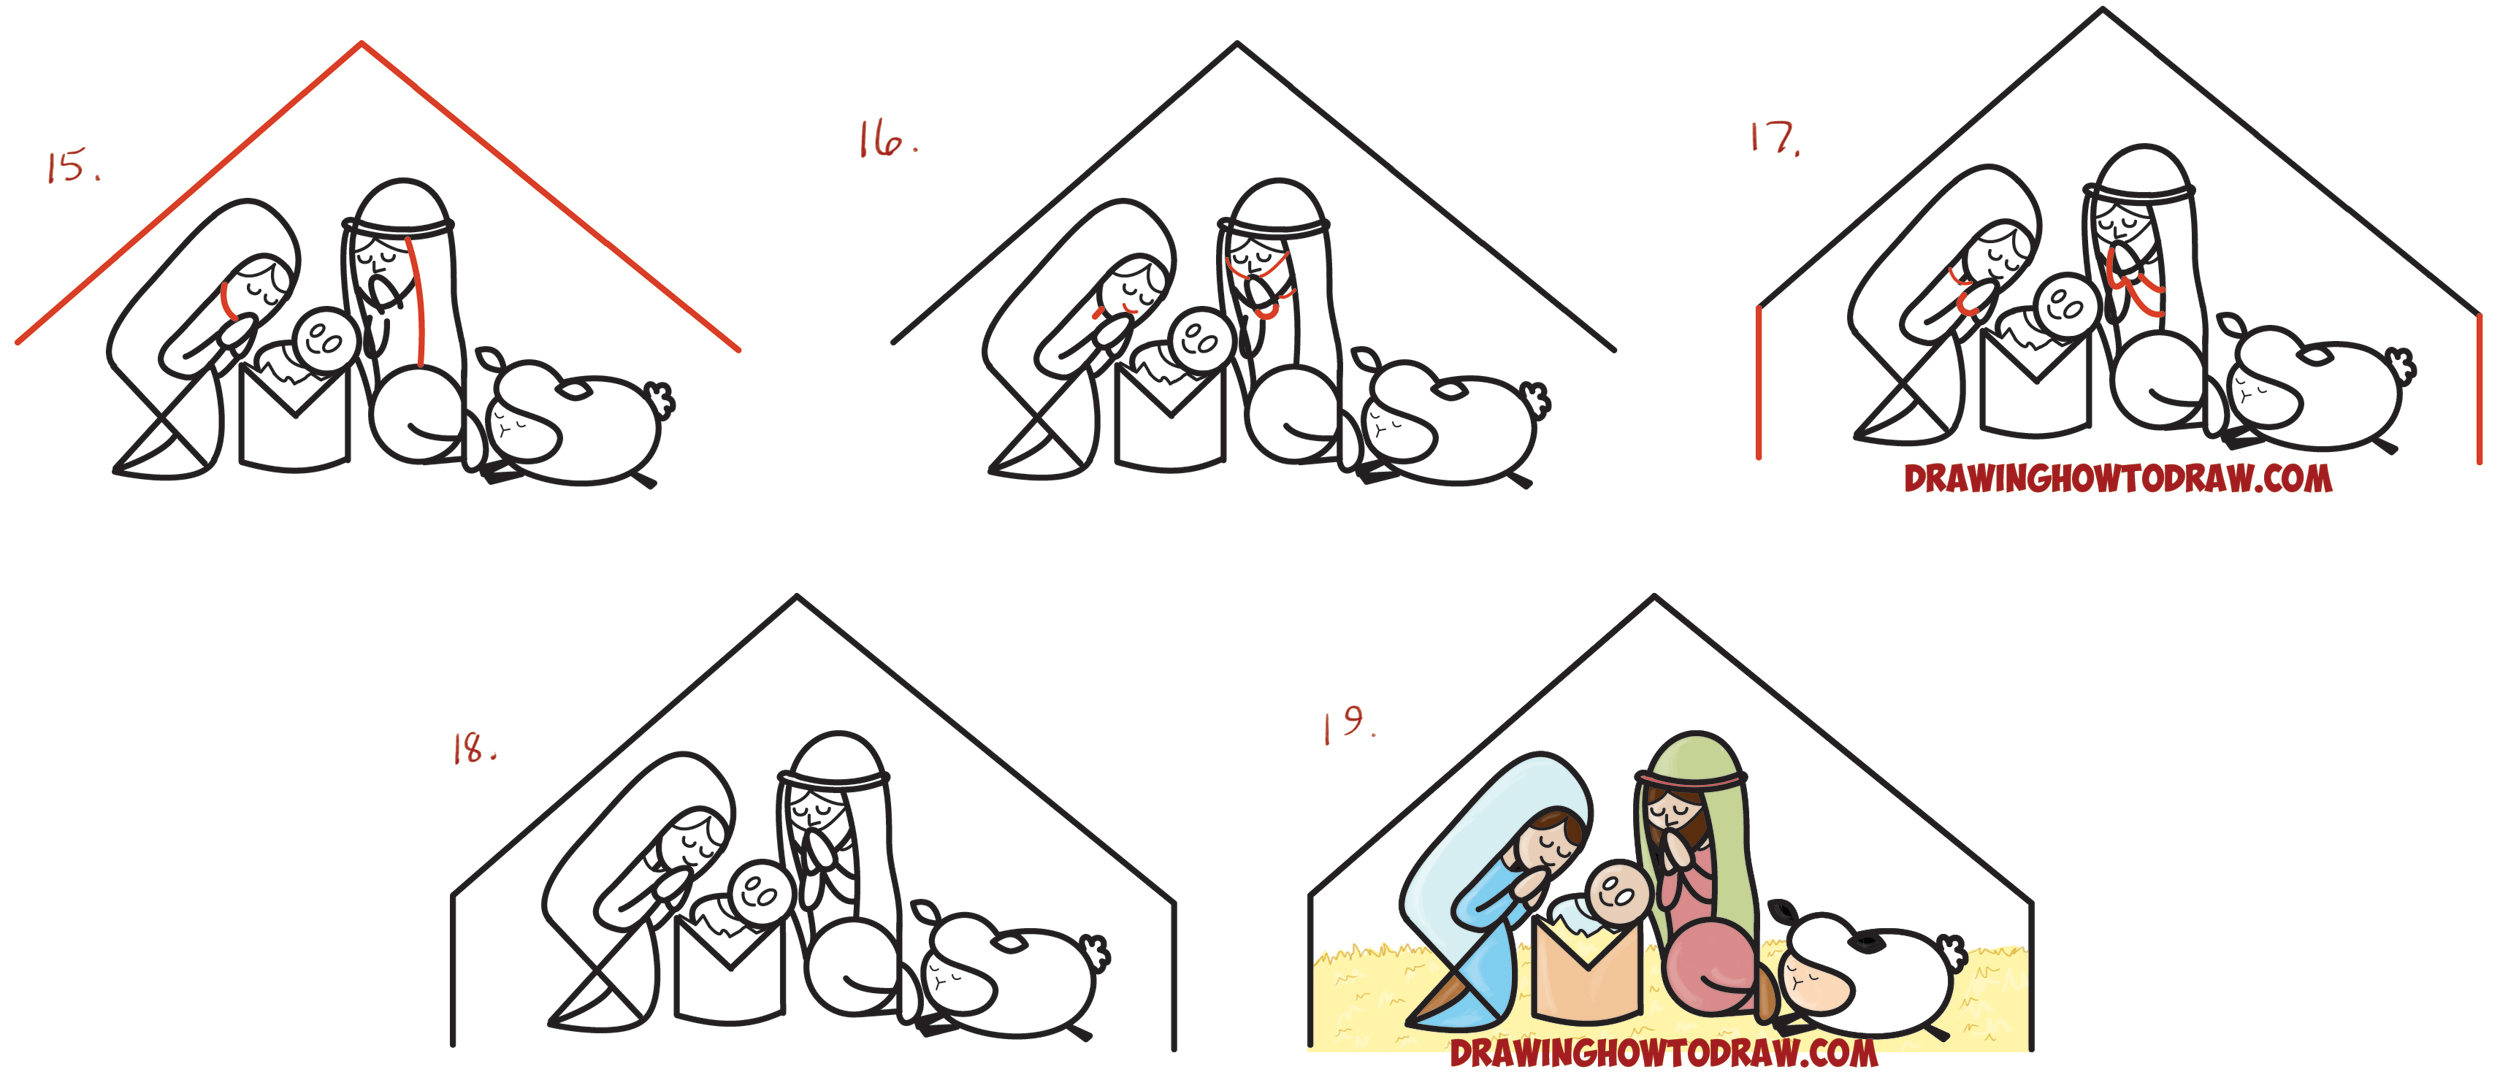 Learn How to Draw Cartoon Nativity Scene with Mary, Jesus, and Joseph in a Manger : Xmas Word Toon Simple Steps Drawing Lesson for Kids